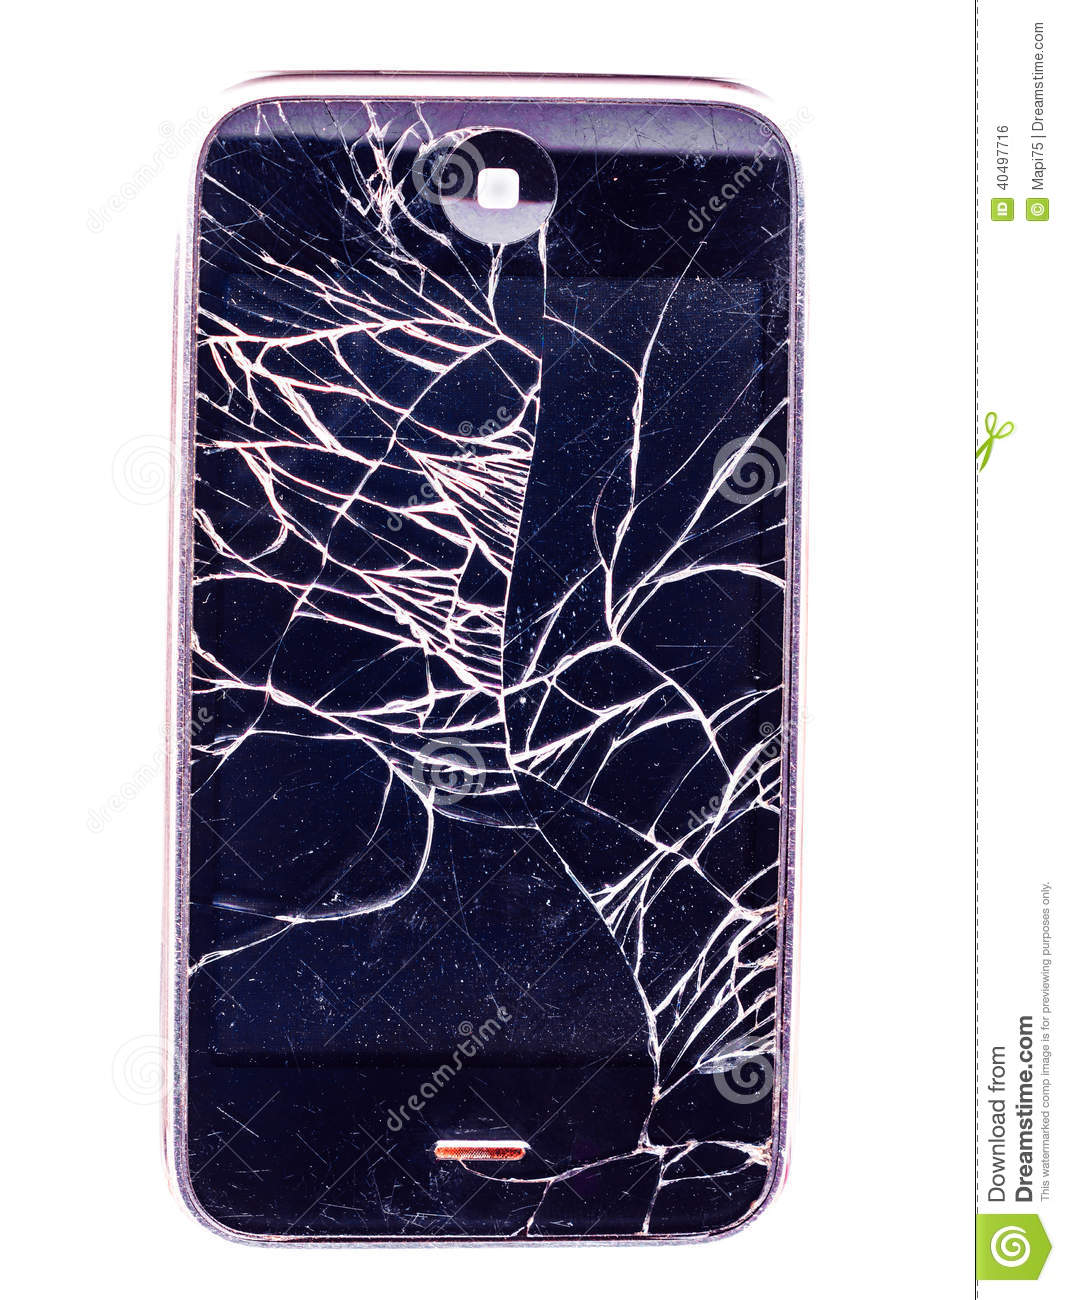 Mobile, iphone destroyed